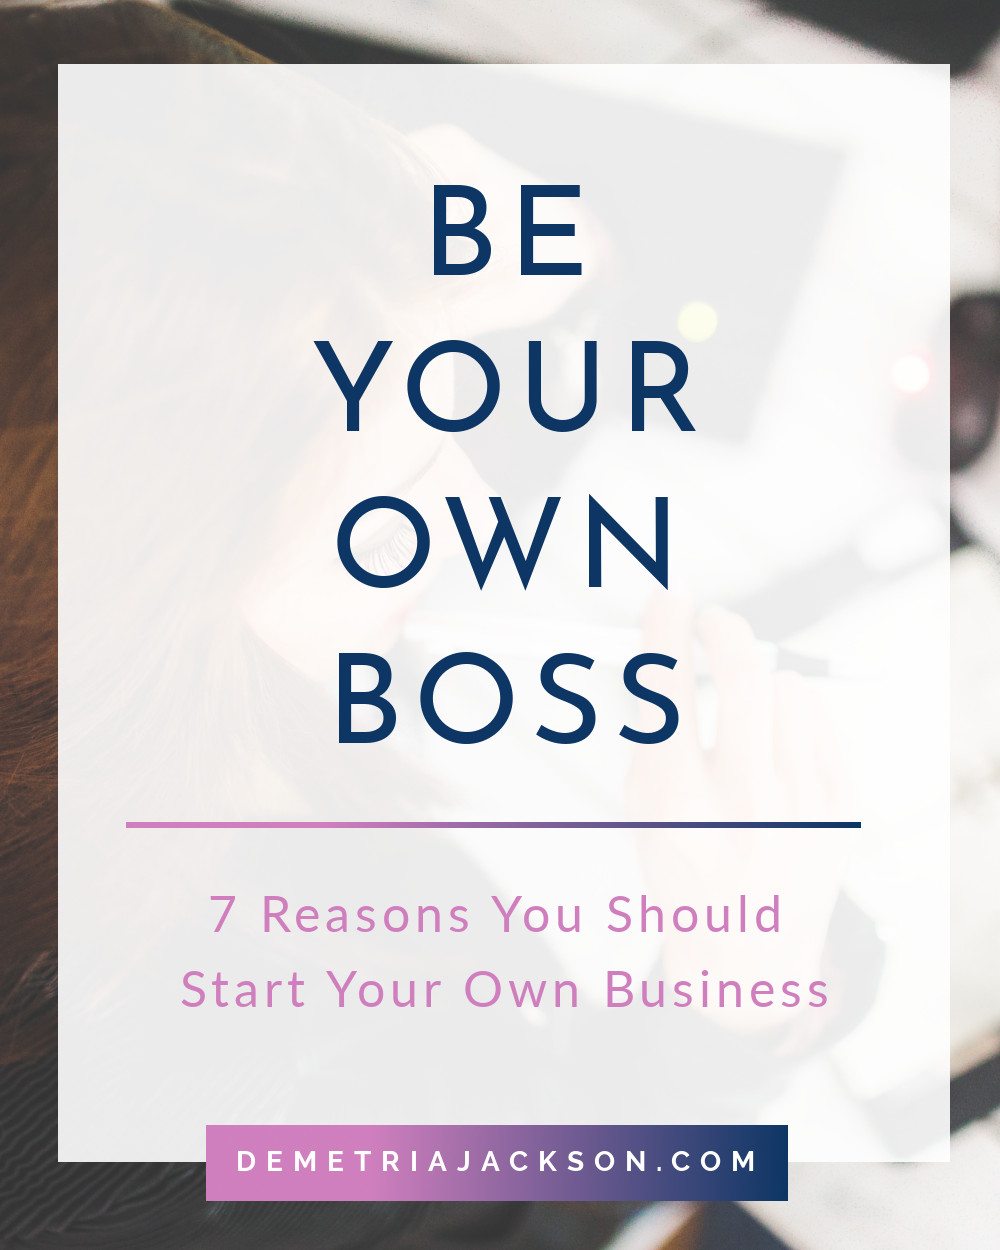 blog-image-7-reasons-you-should-start-a-business.jpeg